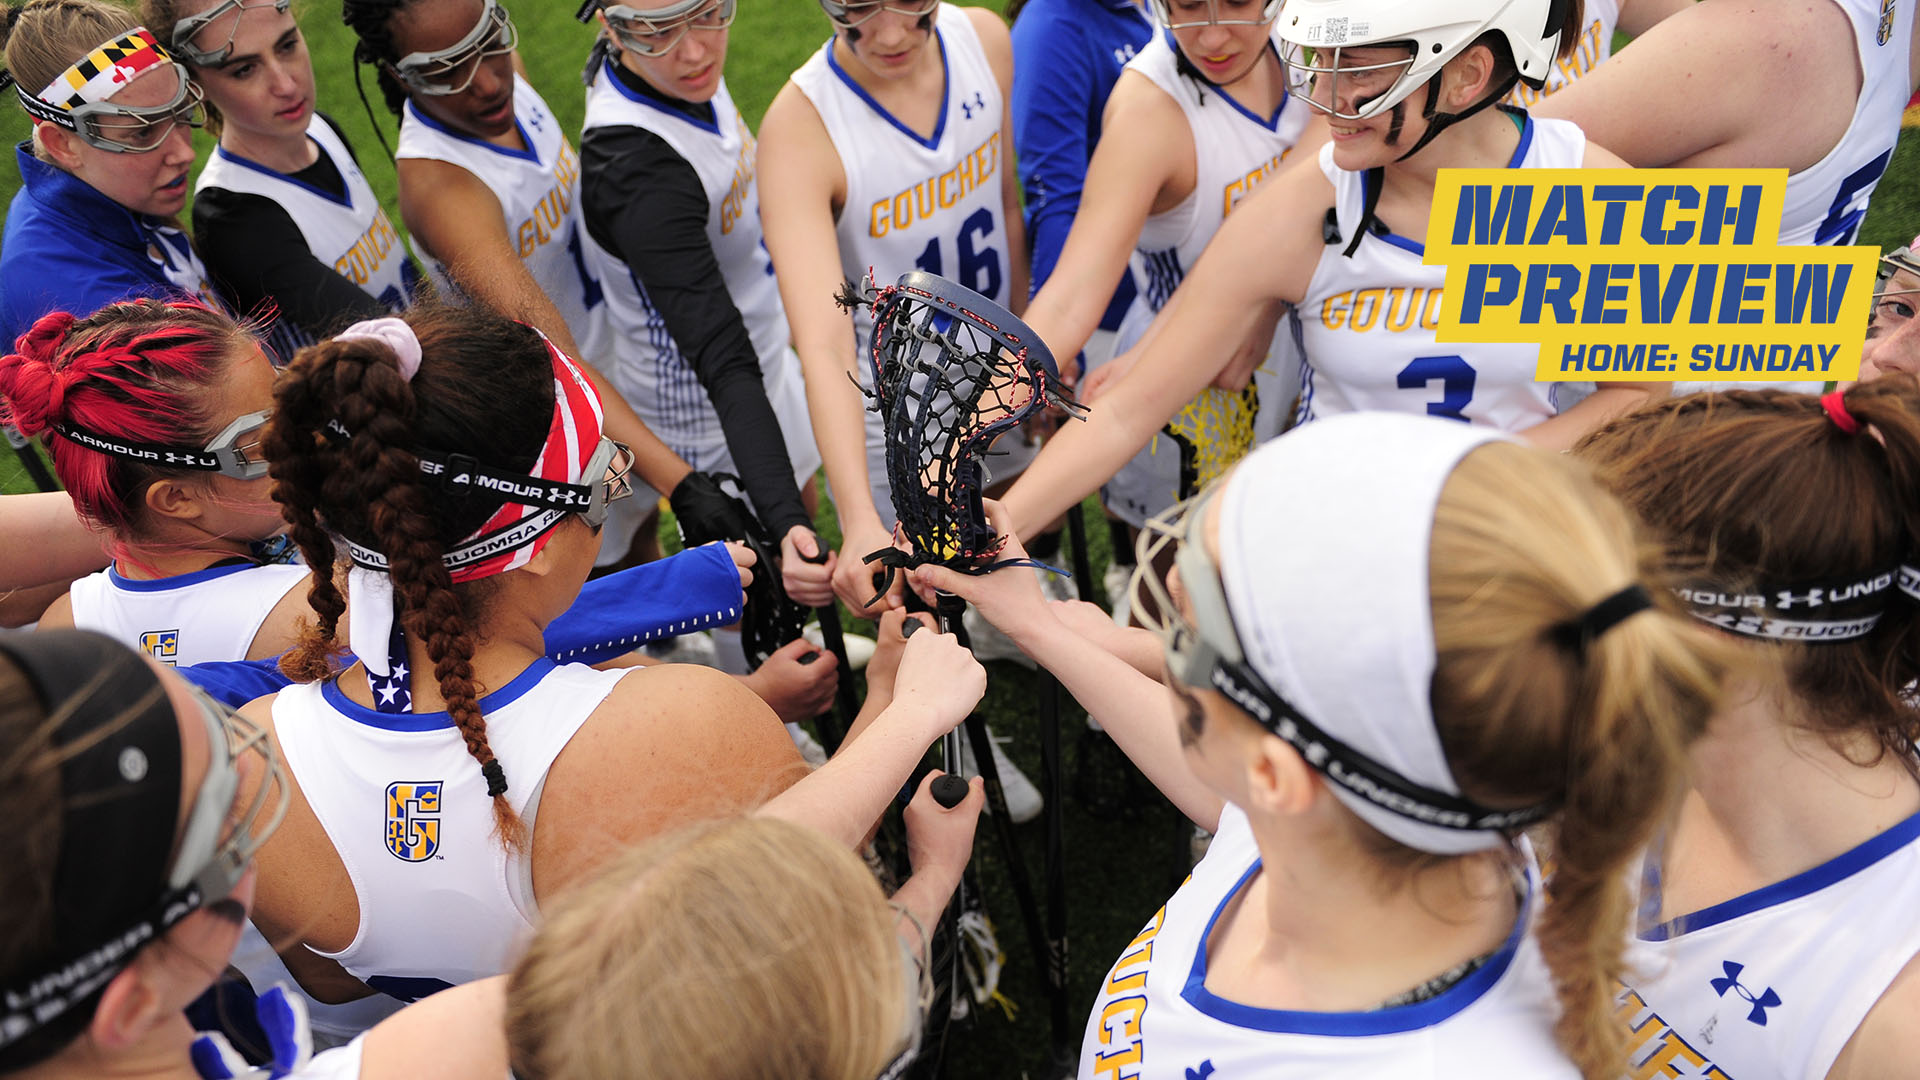 Goucher Women's Lacrosse Opens Second Year Under Goodson At Home Against Virginia Wesleyan On Sunday